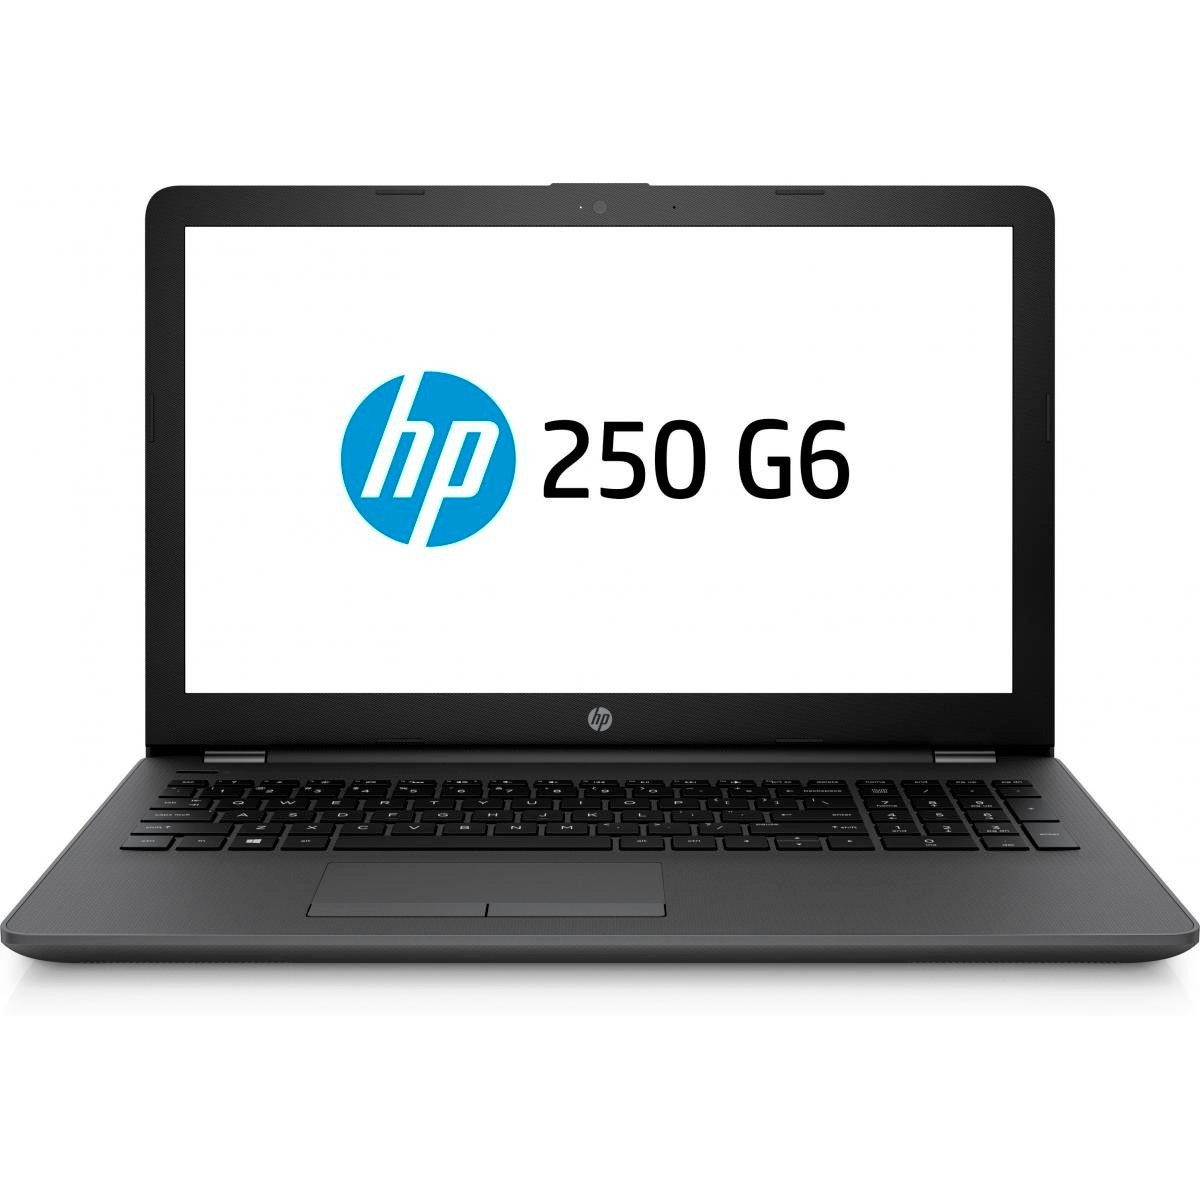 Hp Notebook Hp 250 G6 156 Led Intel Core I7 7500u 2